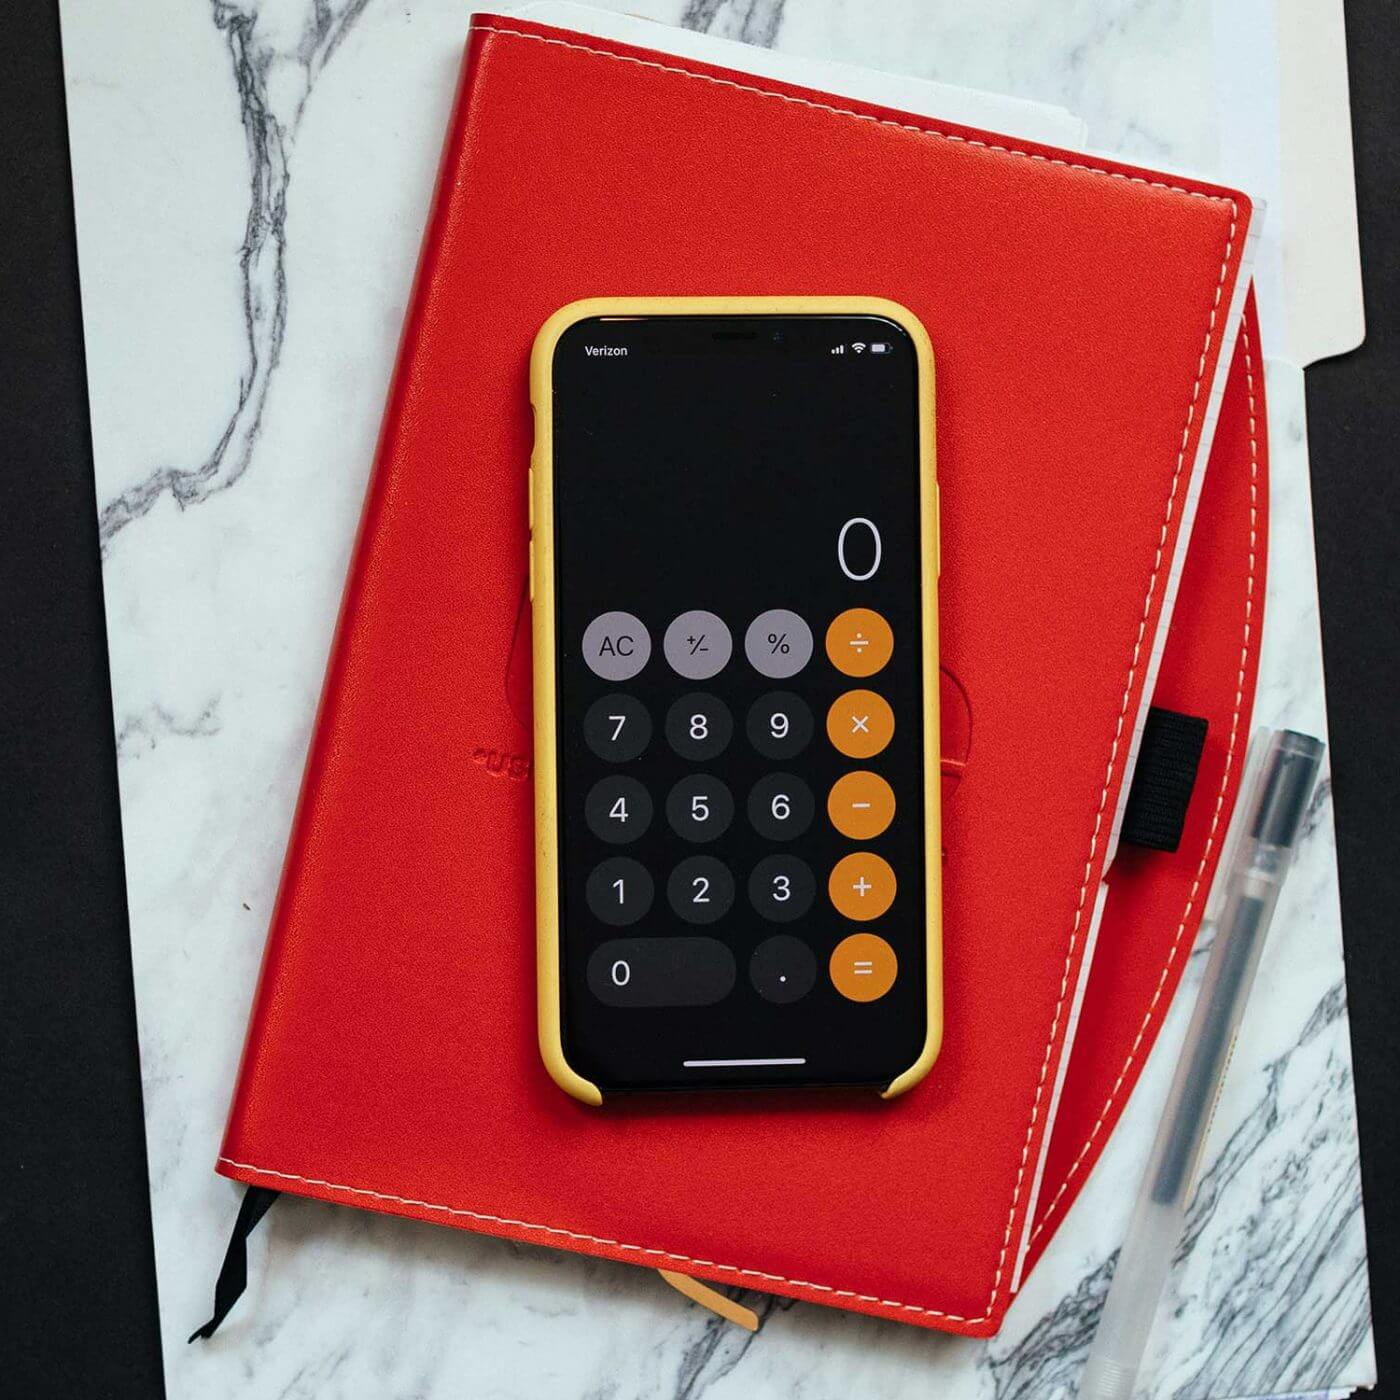 A smartphone with a calculator app open sitting on top of a notebook.